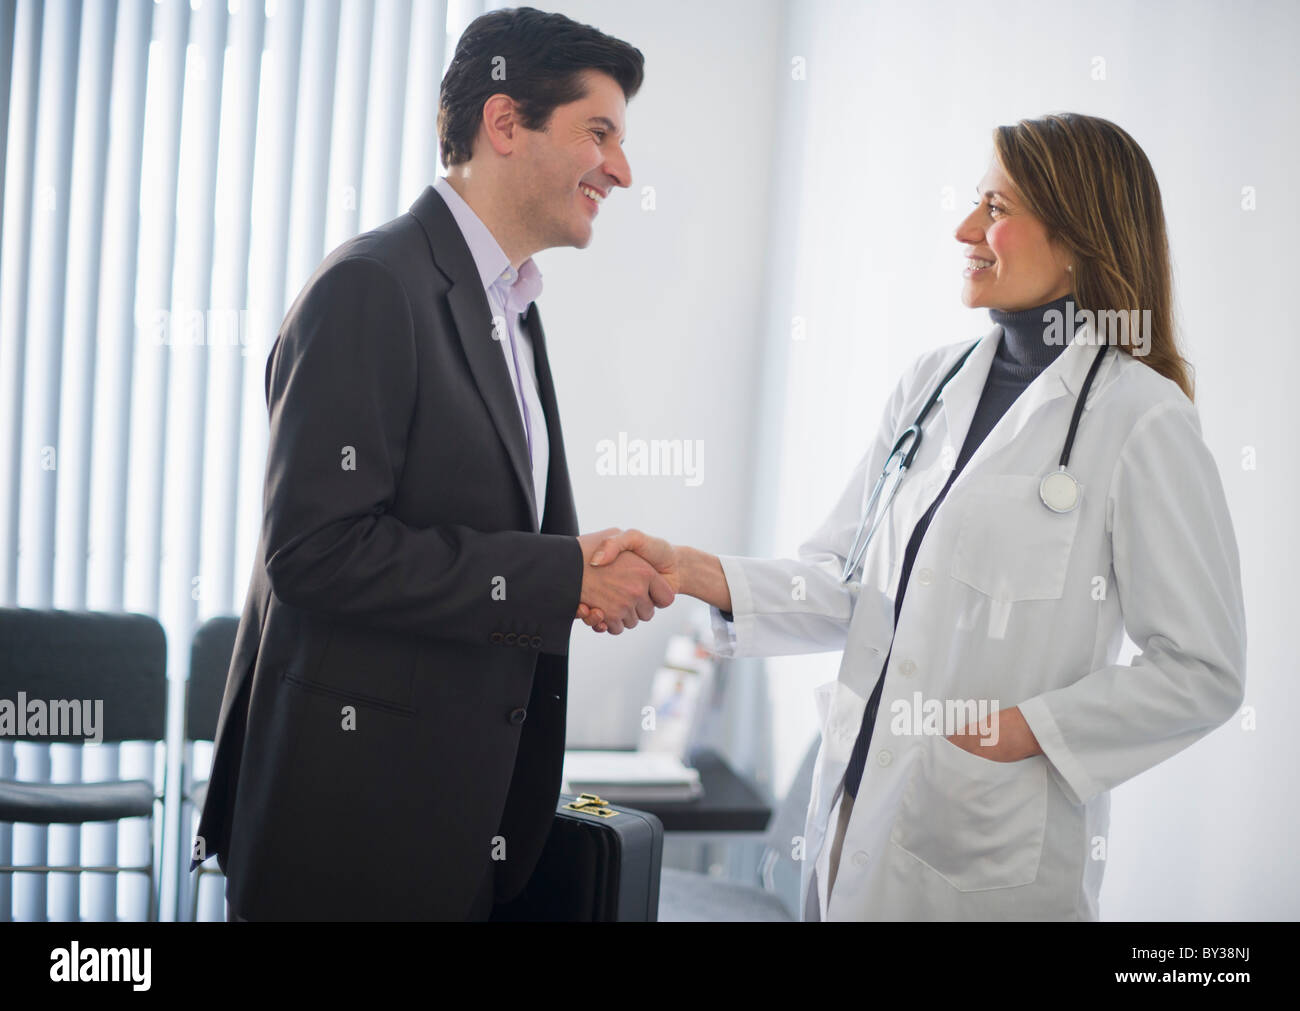 Elegant USA, New Jersey, Jersey City, Medical Sales Representative Shaking Hands  With Female Doctor